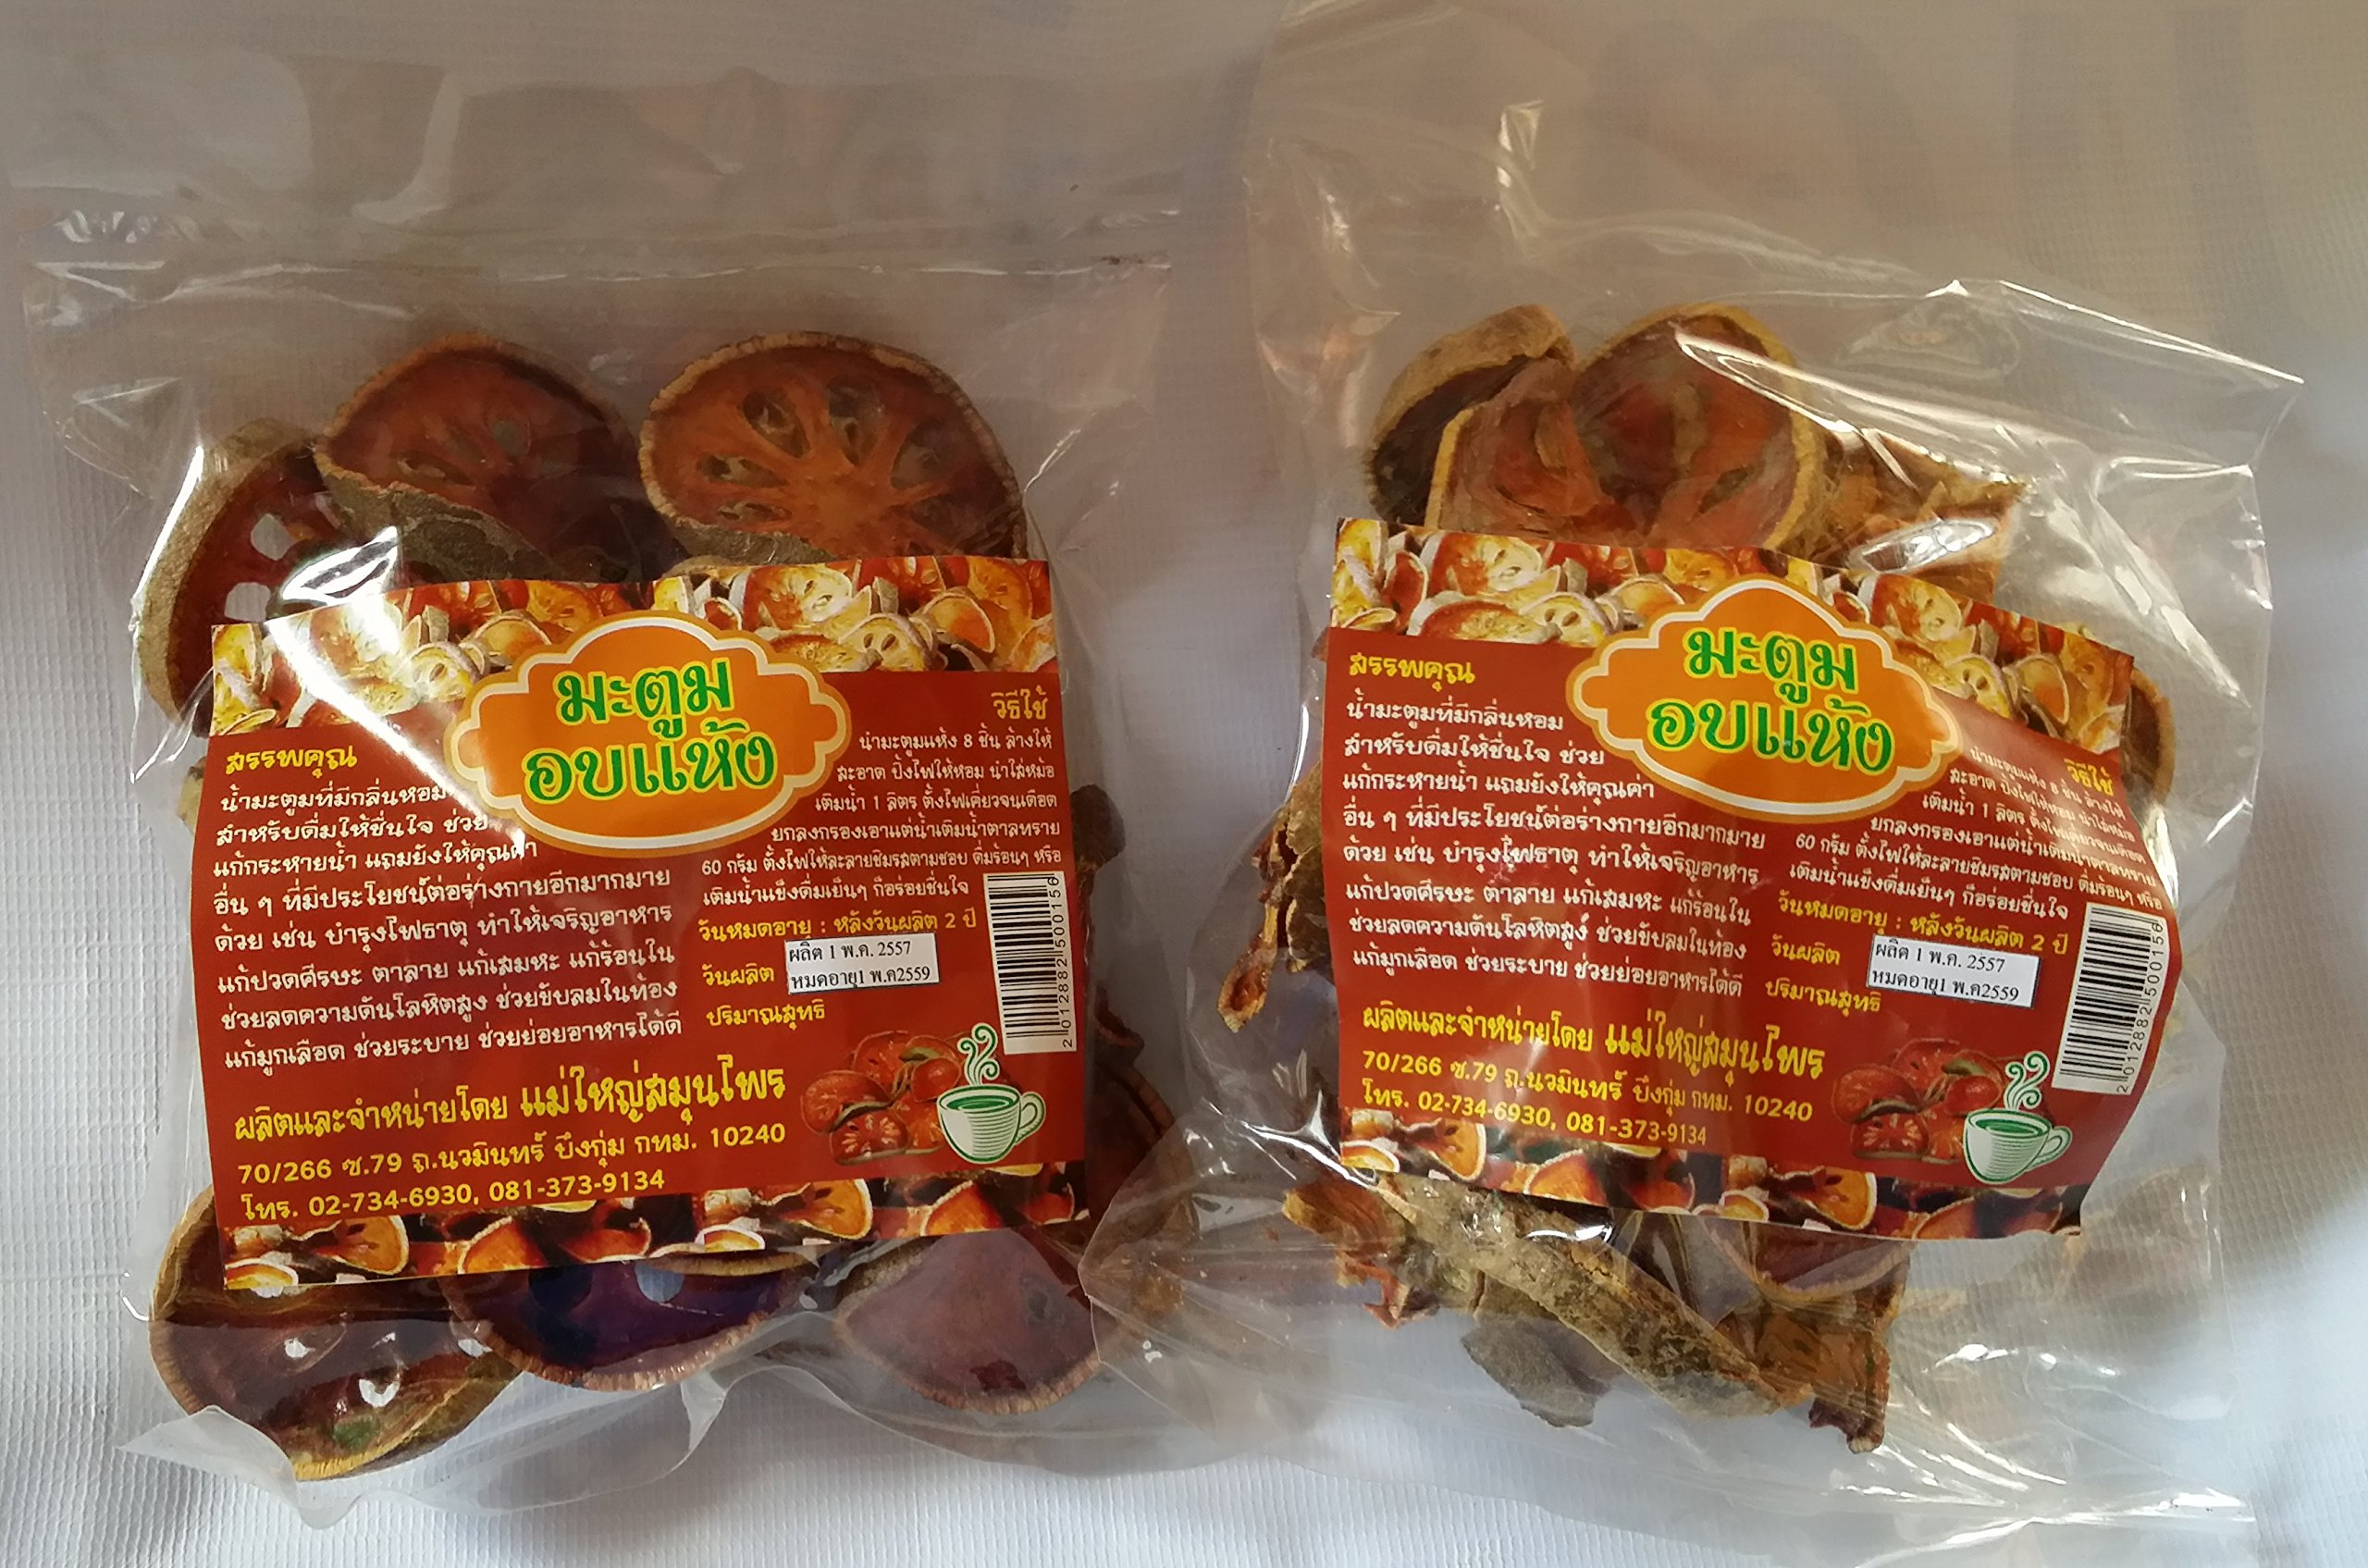 Organic Dried Bael Fruit 100% Natural for Healthy Net Wt 100 G X 3 Packs by Mea Yai Haerb (Image #2)